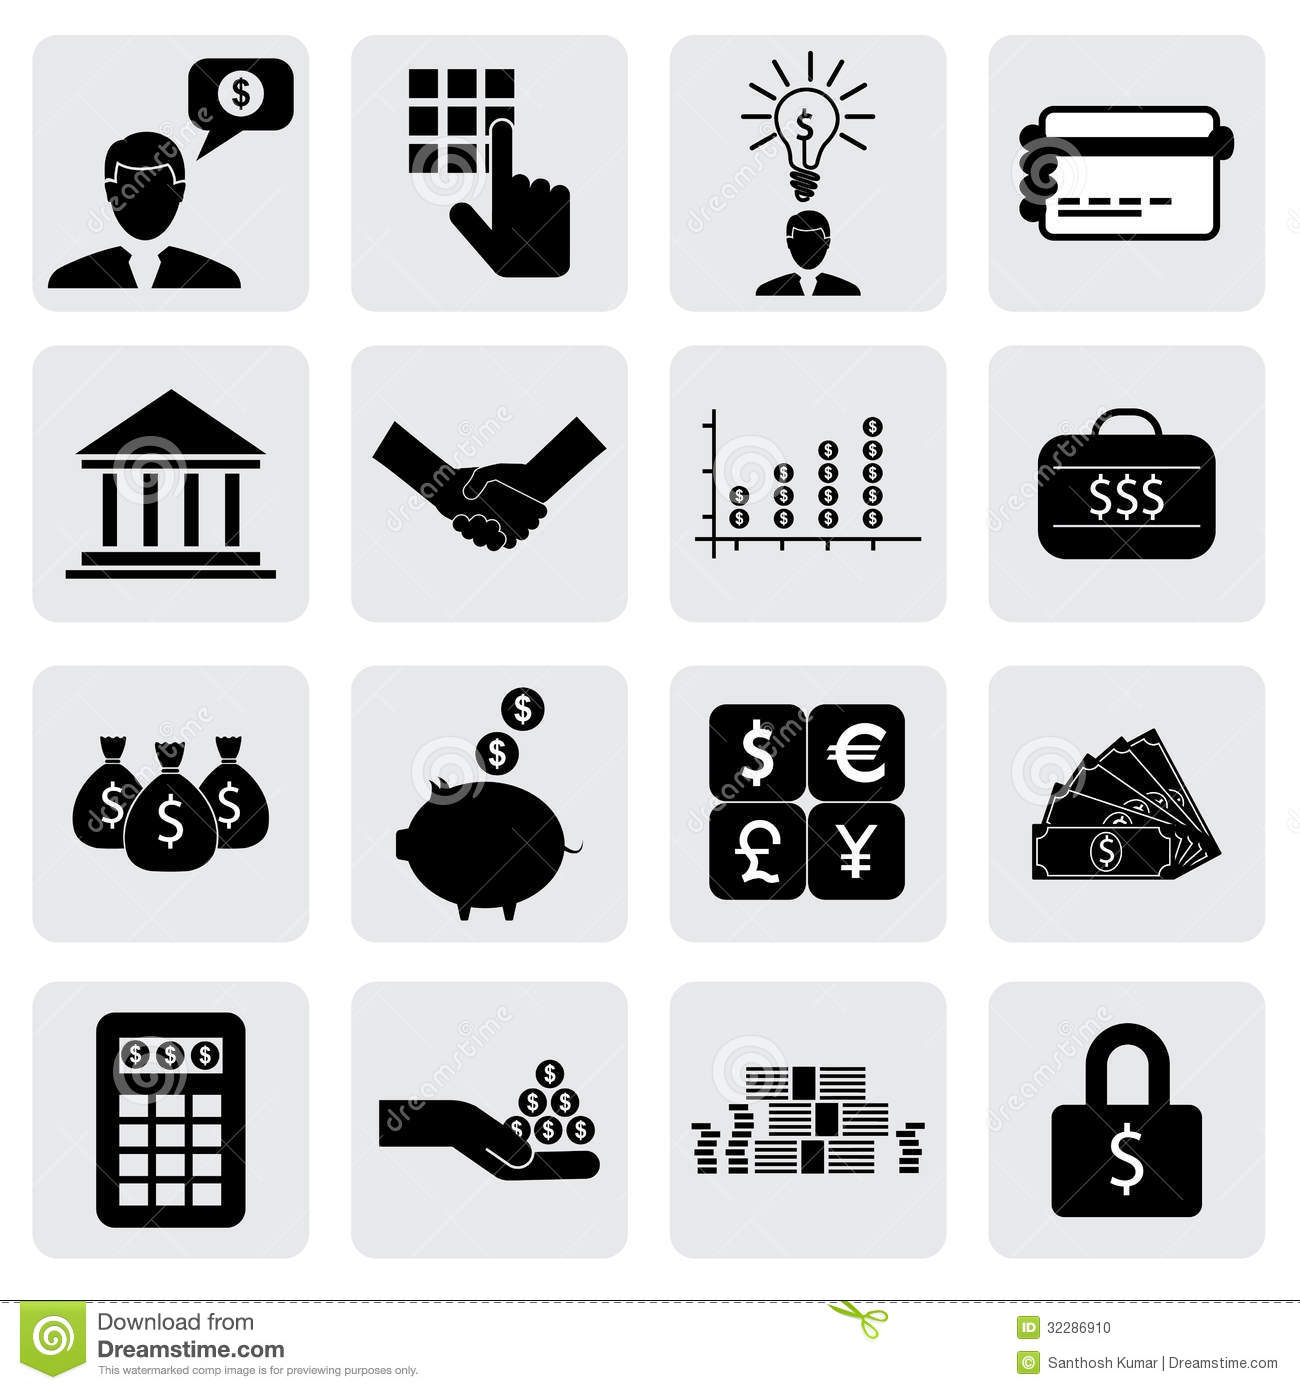 Bank & finance icons(signs) related to money, wealth